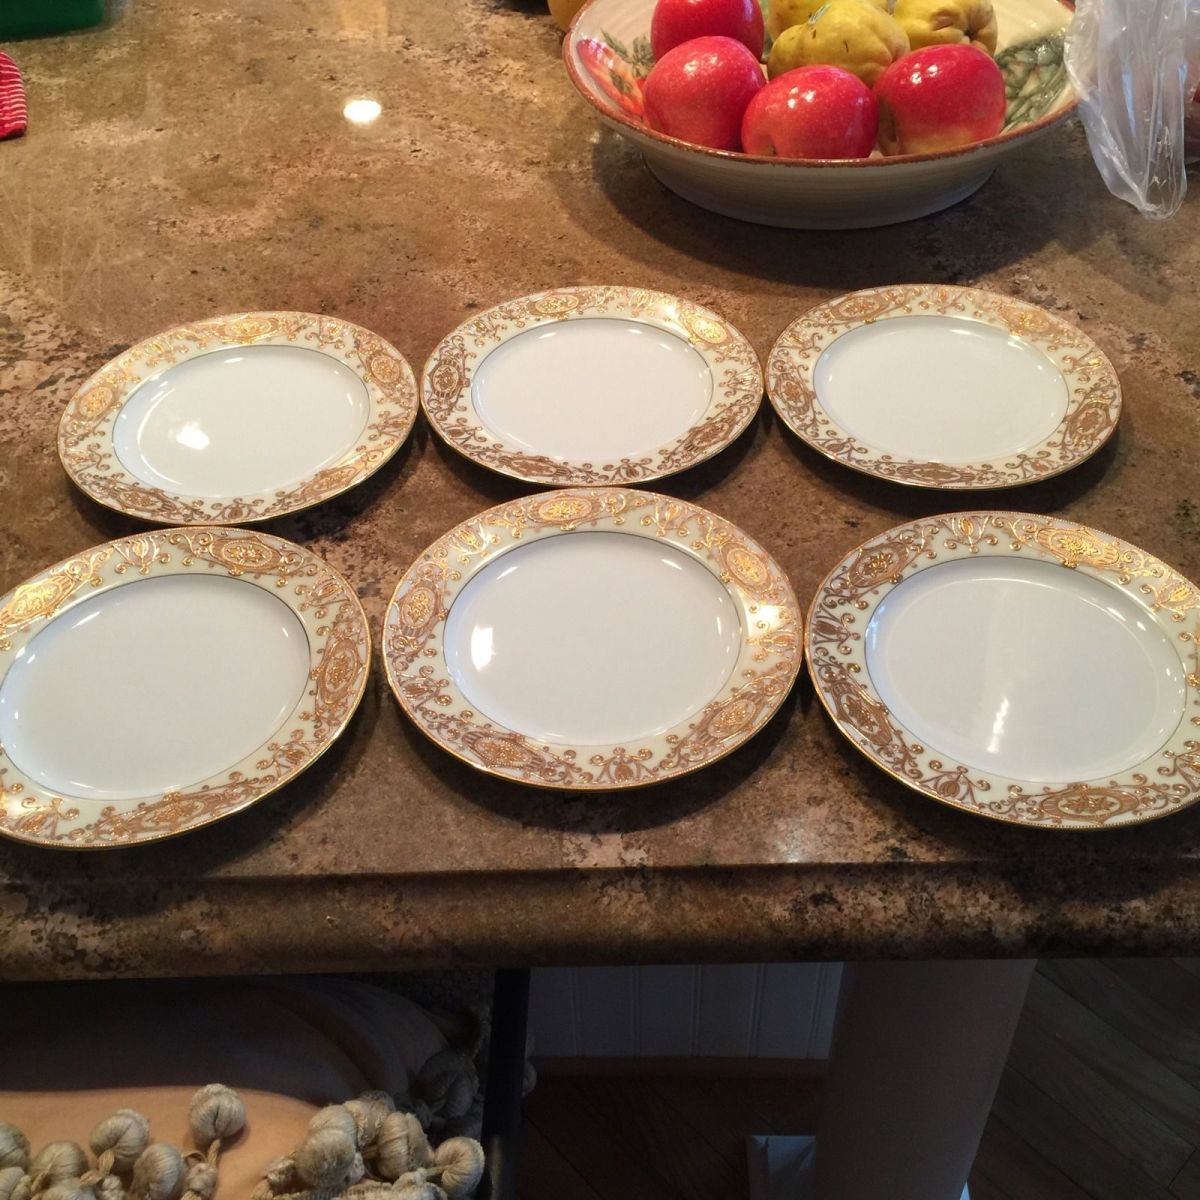 Six  salad or dessert plates - For the age they are excellent condition, the gold looks nice and shiny. The plates are a tad over 7 1/2 inches.